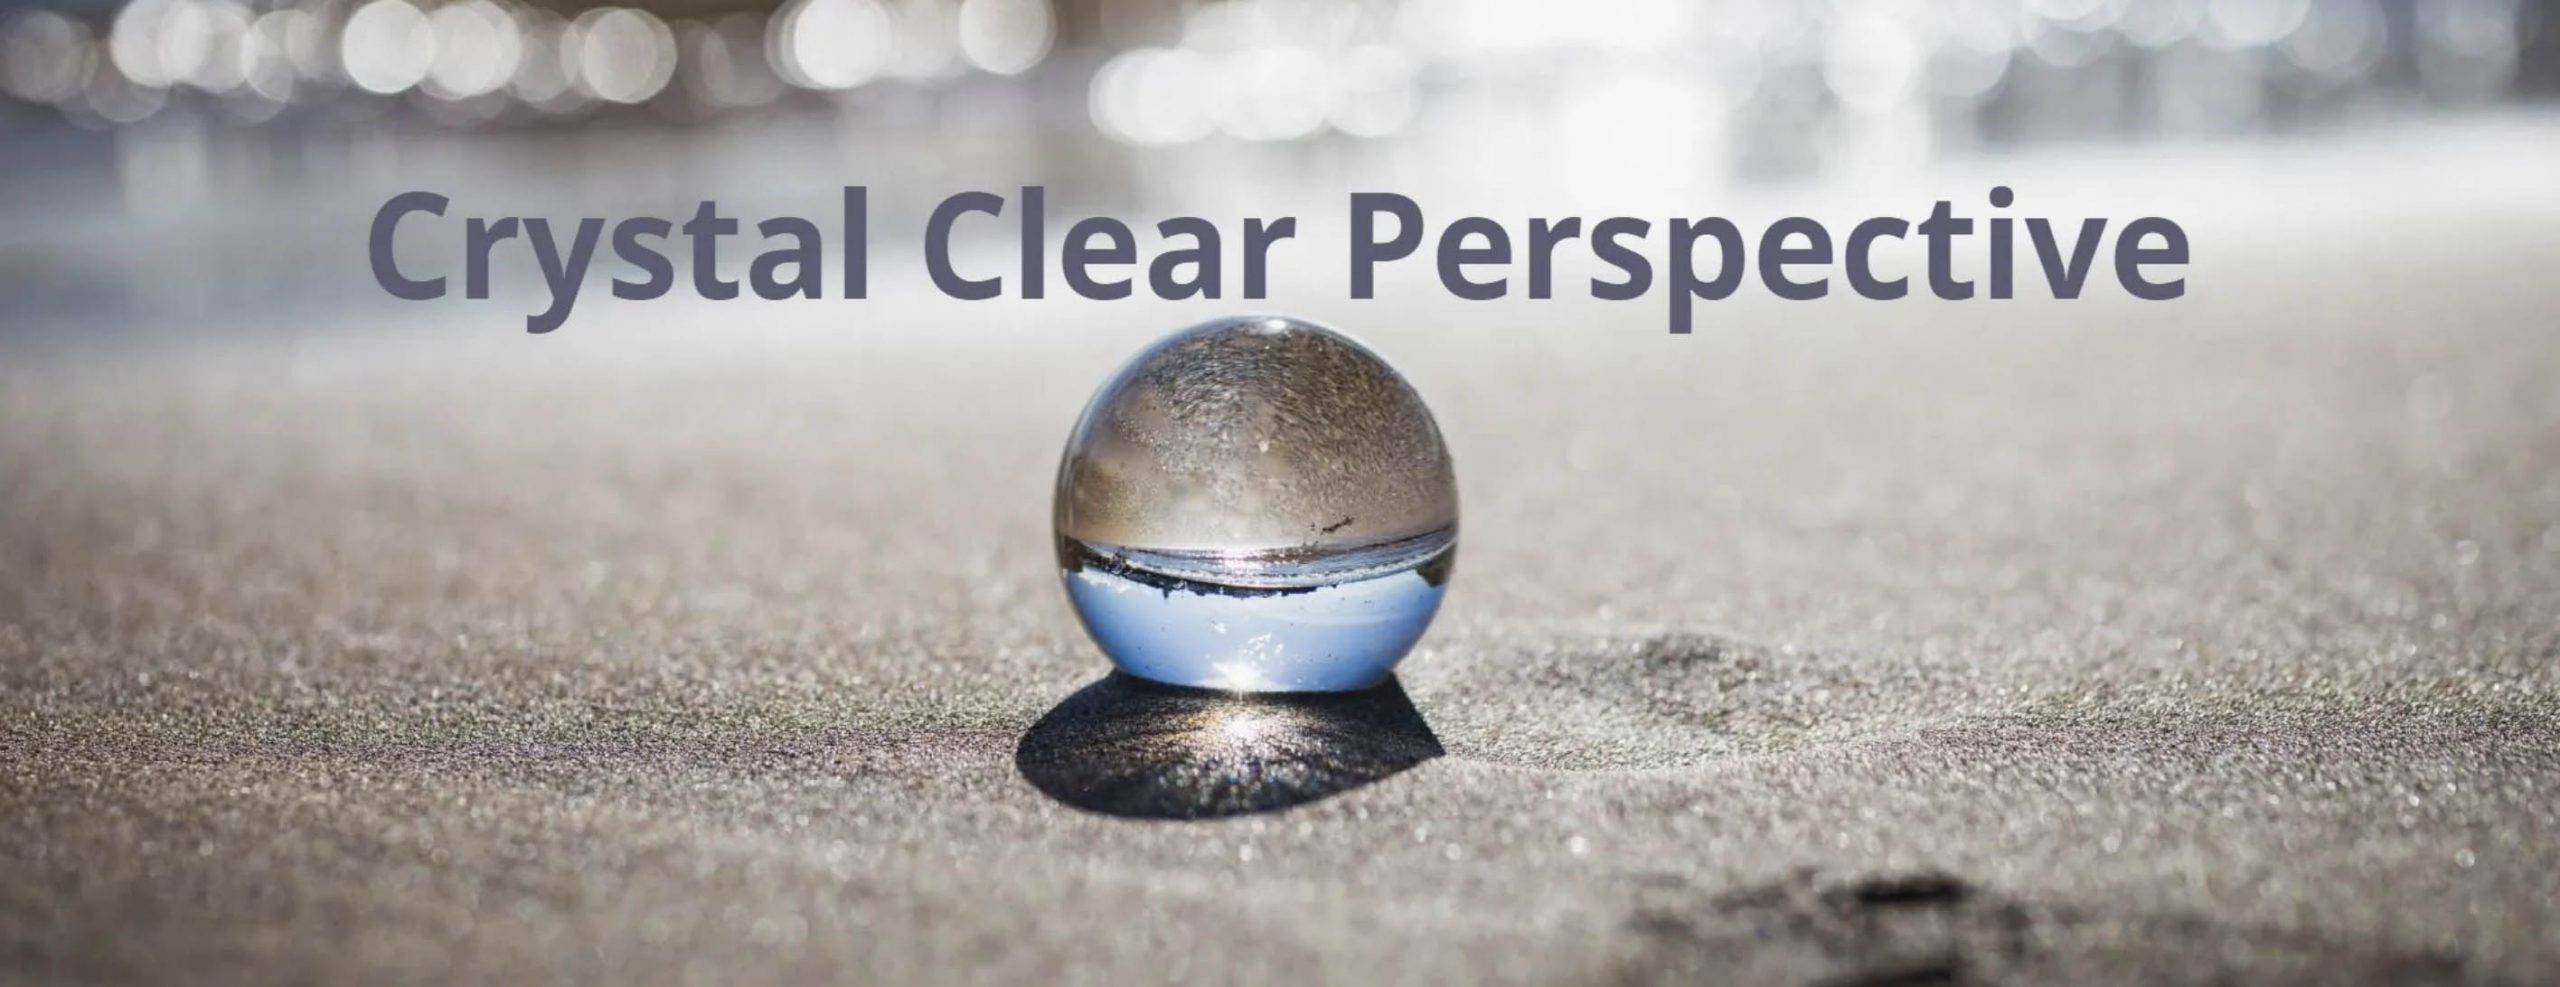 Crystal Clear Perspective Logo